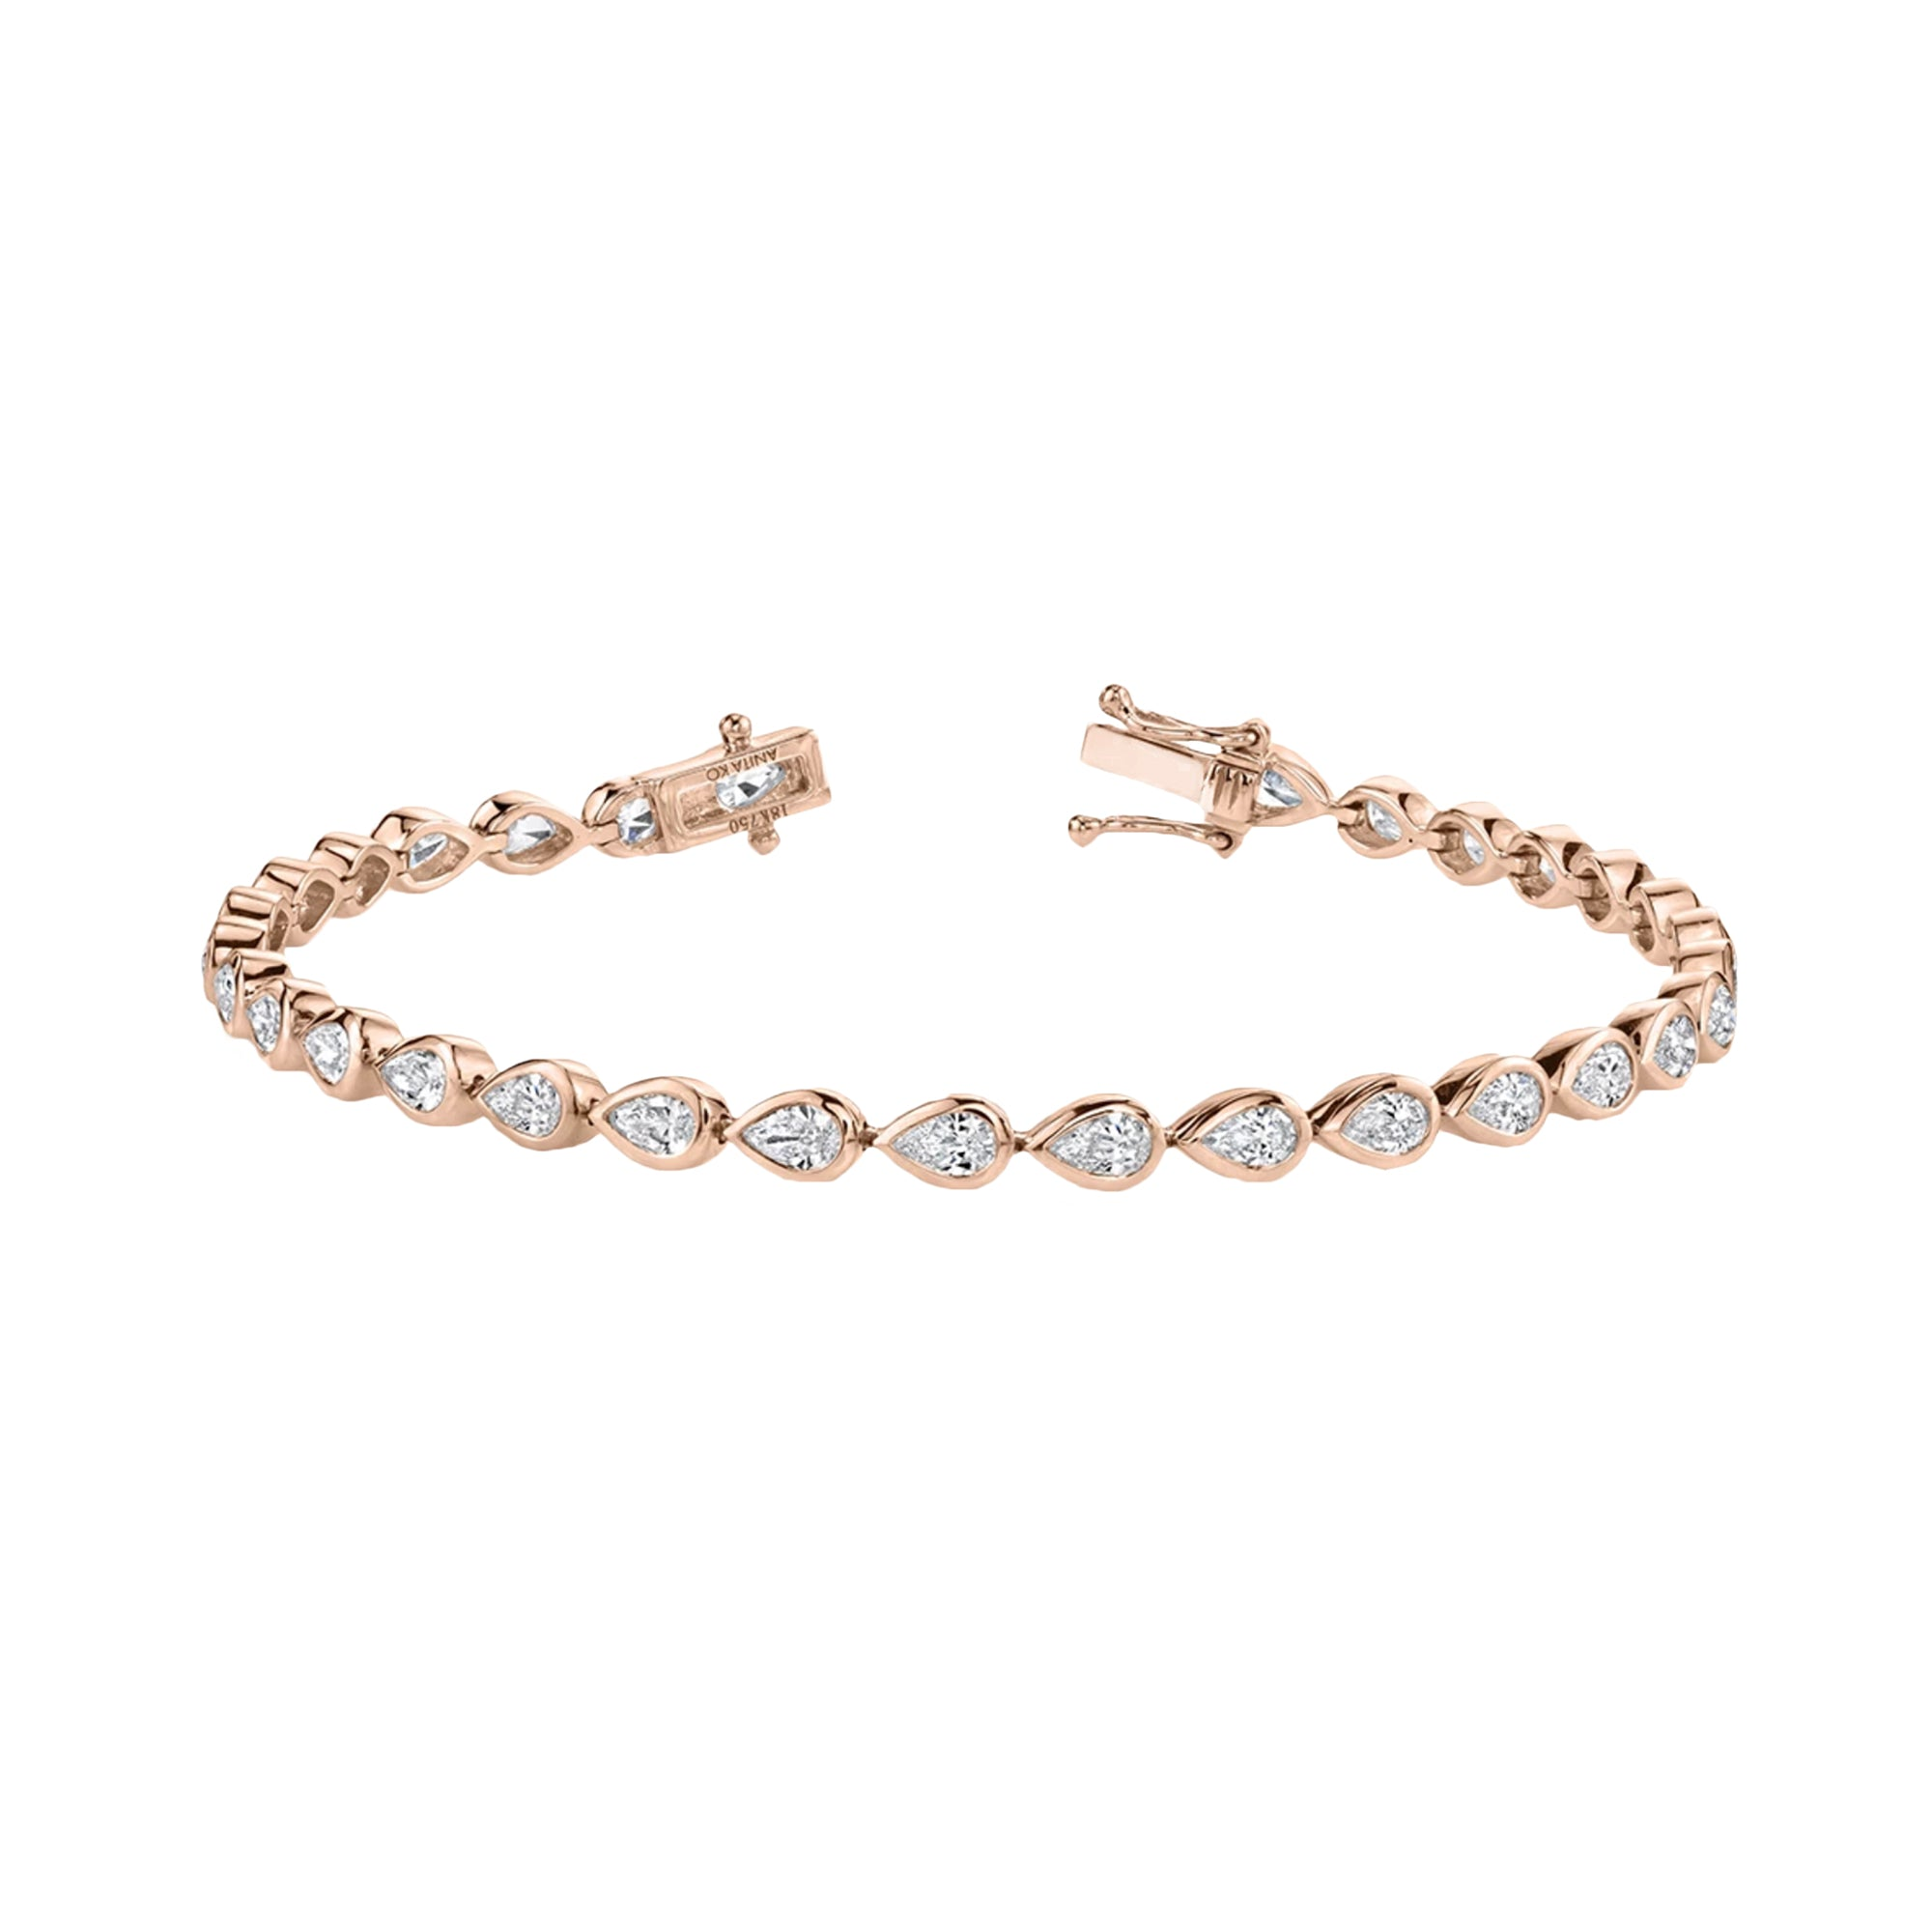 Pear Diamond Bezel Tennis Bracelet - Anita Ko - Bracelets | Broken English Jewelry